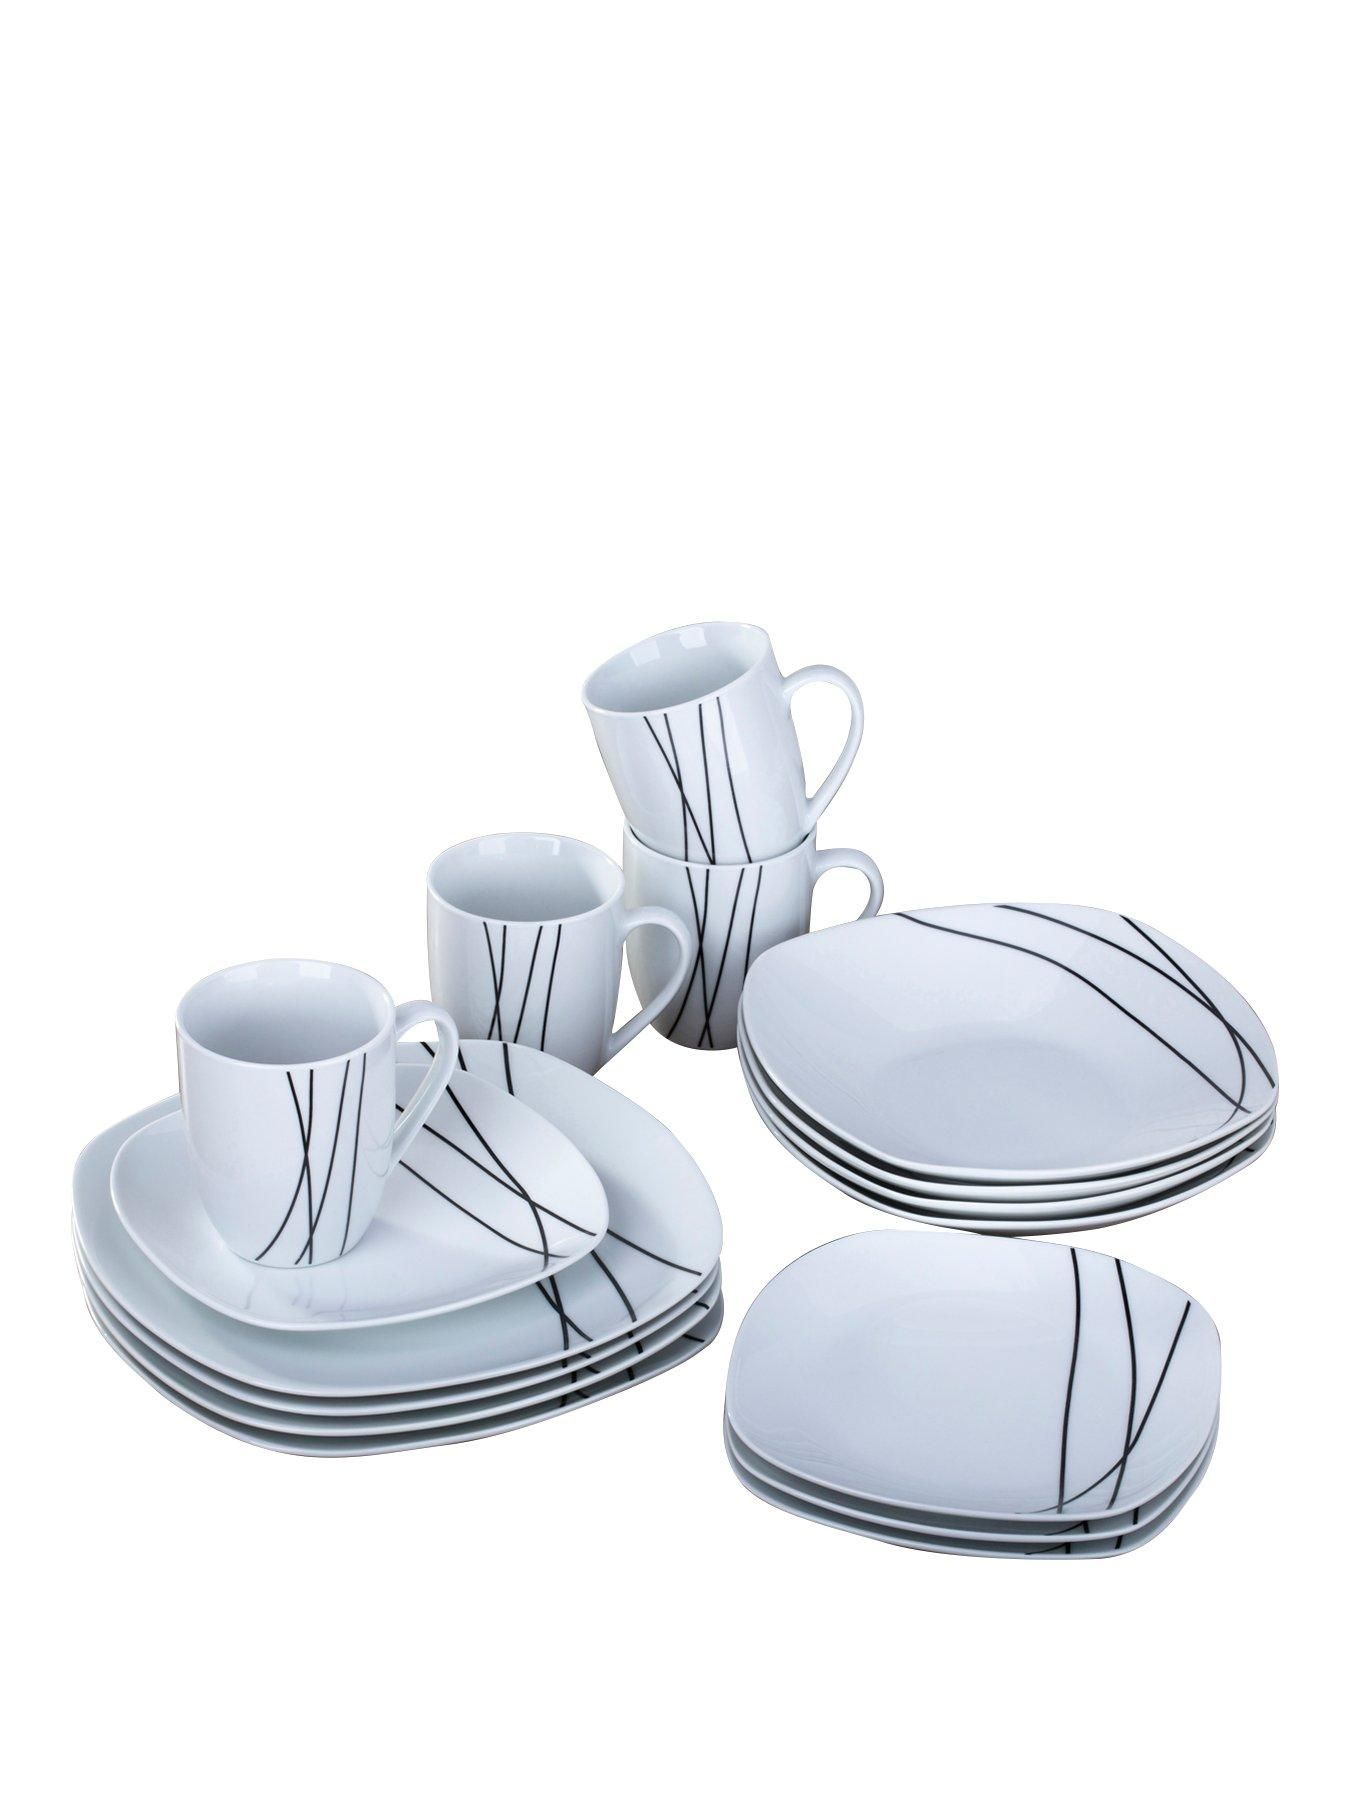 Harper 16-piece Dinner Set With enough pieces included to seat a family of 4 8dc969fe83